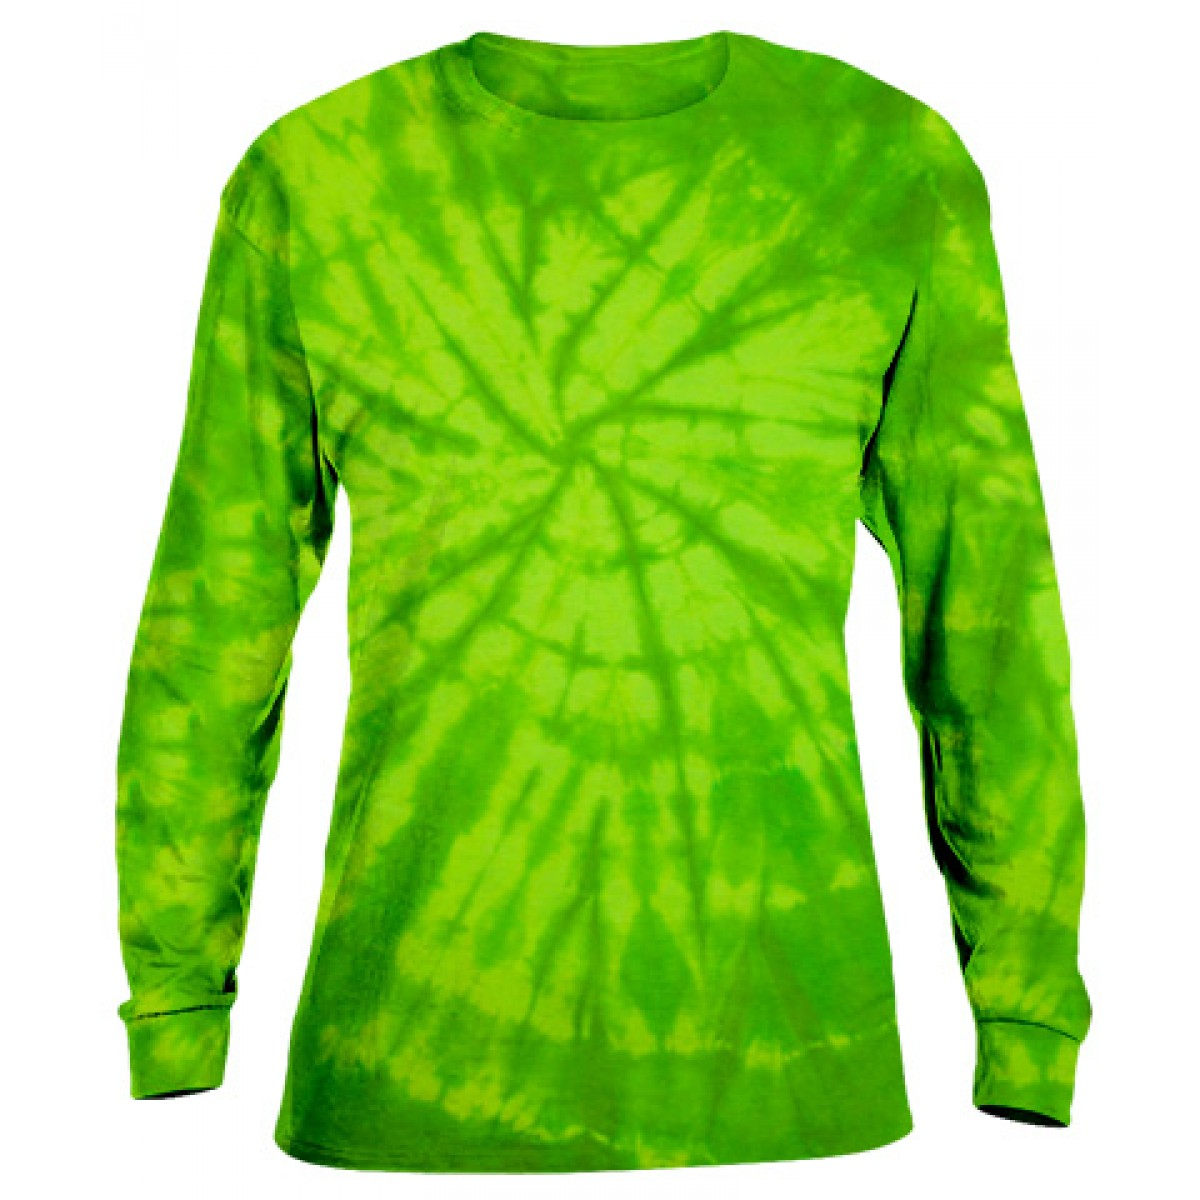 Tie-Dye Long Sleeve Shirt -Lime Green-XL